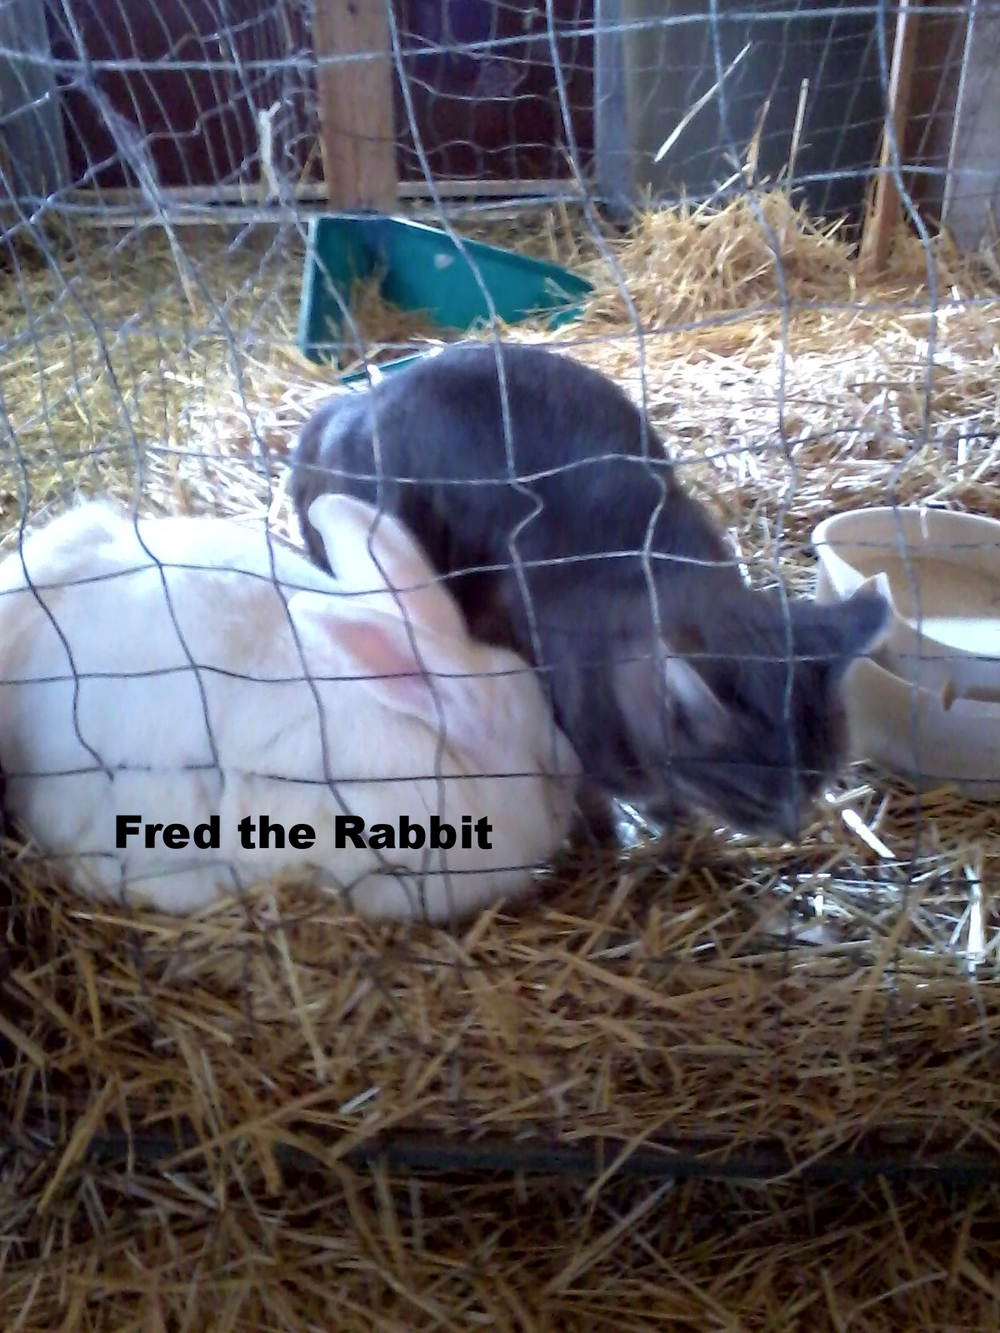 fred the rabbit & one of the kitties.jpg